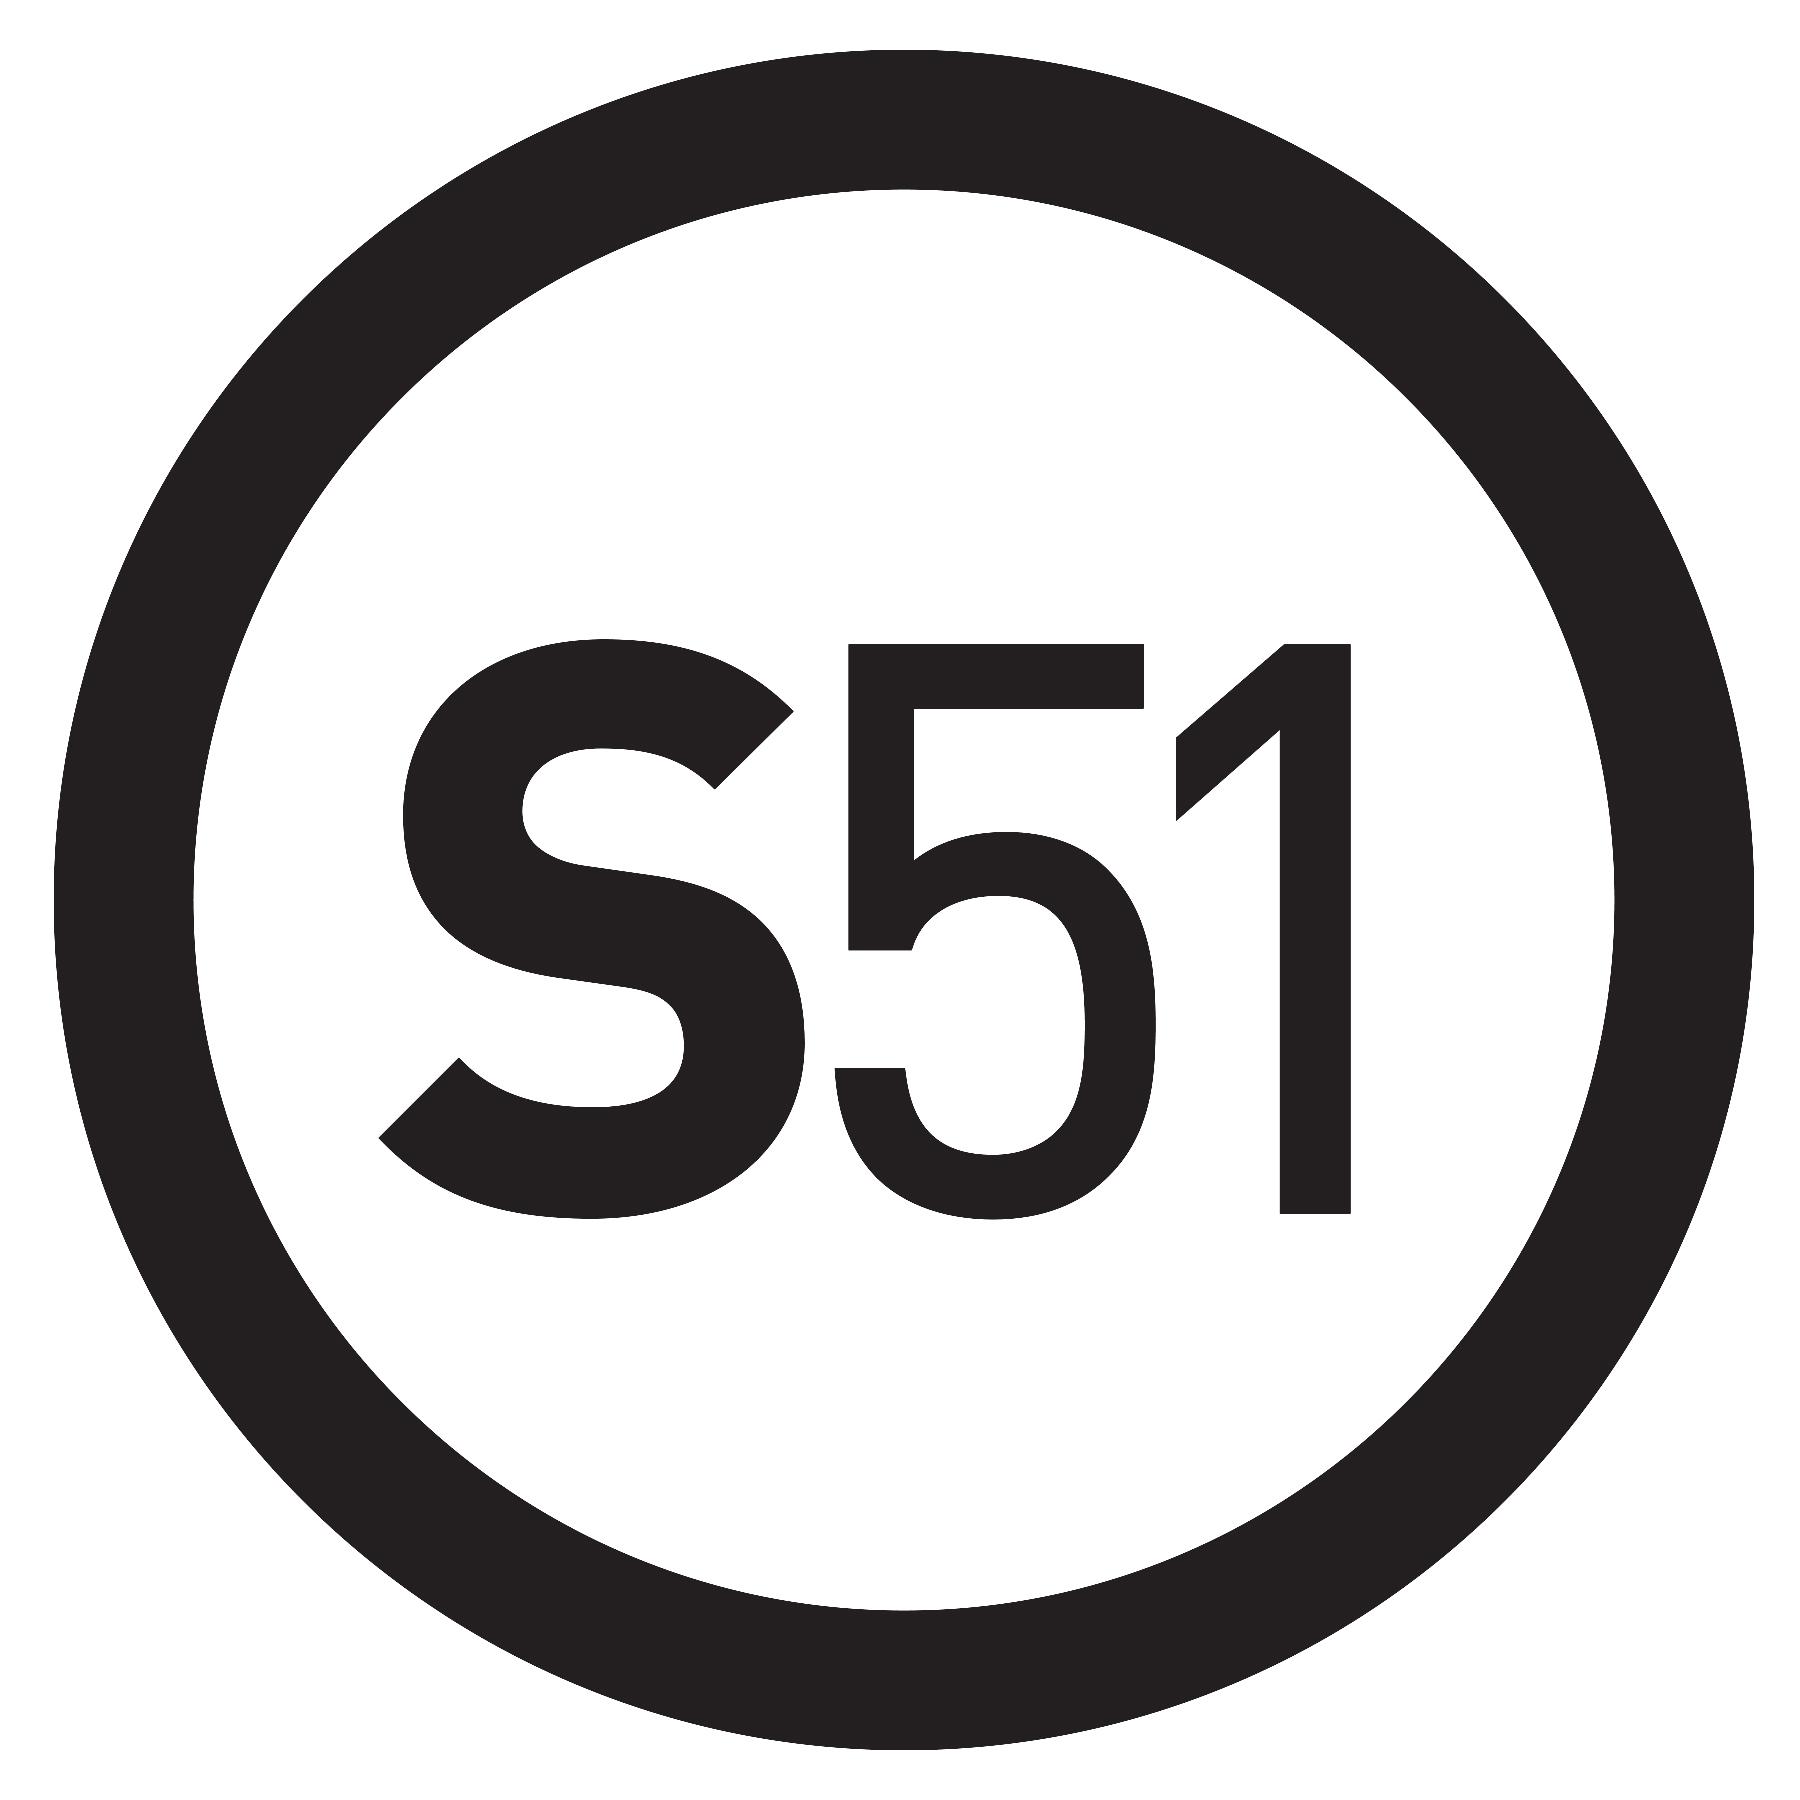 SURFACE 51 logo